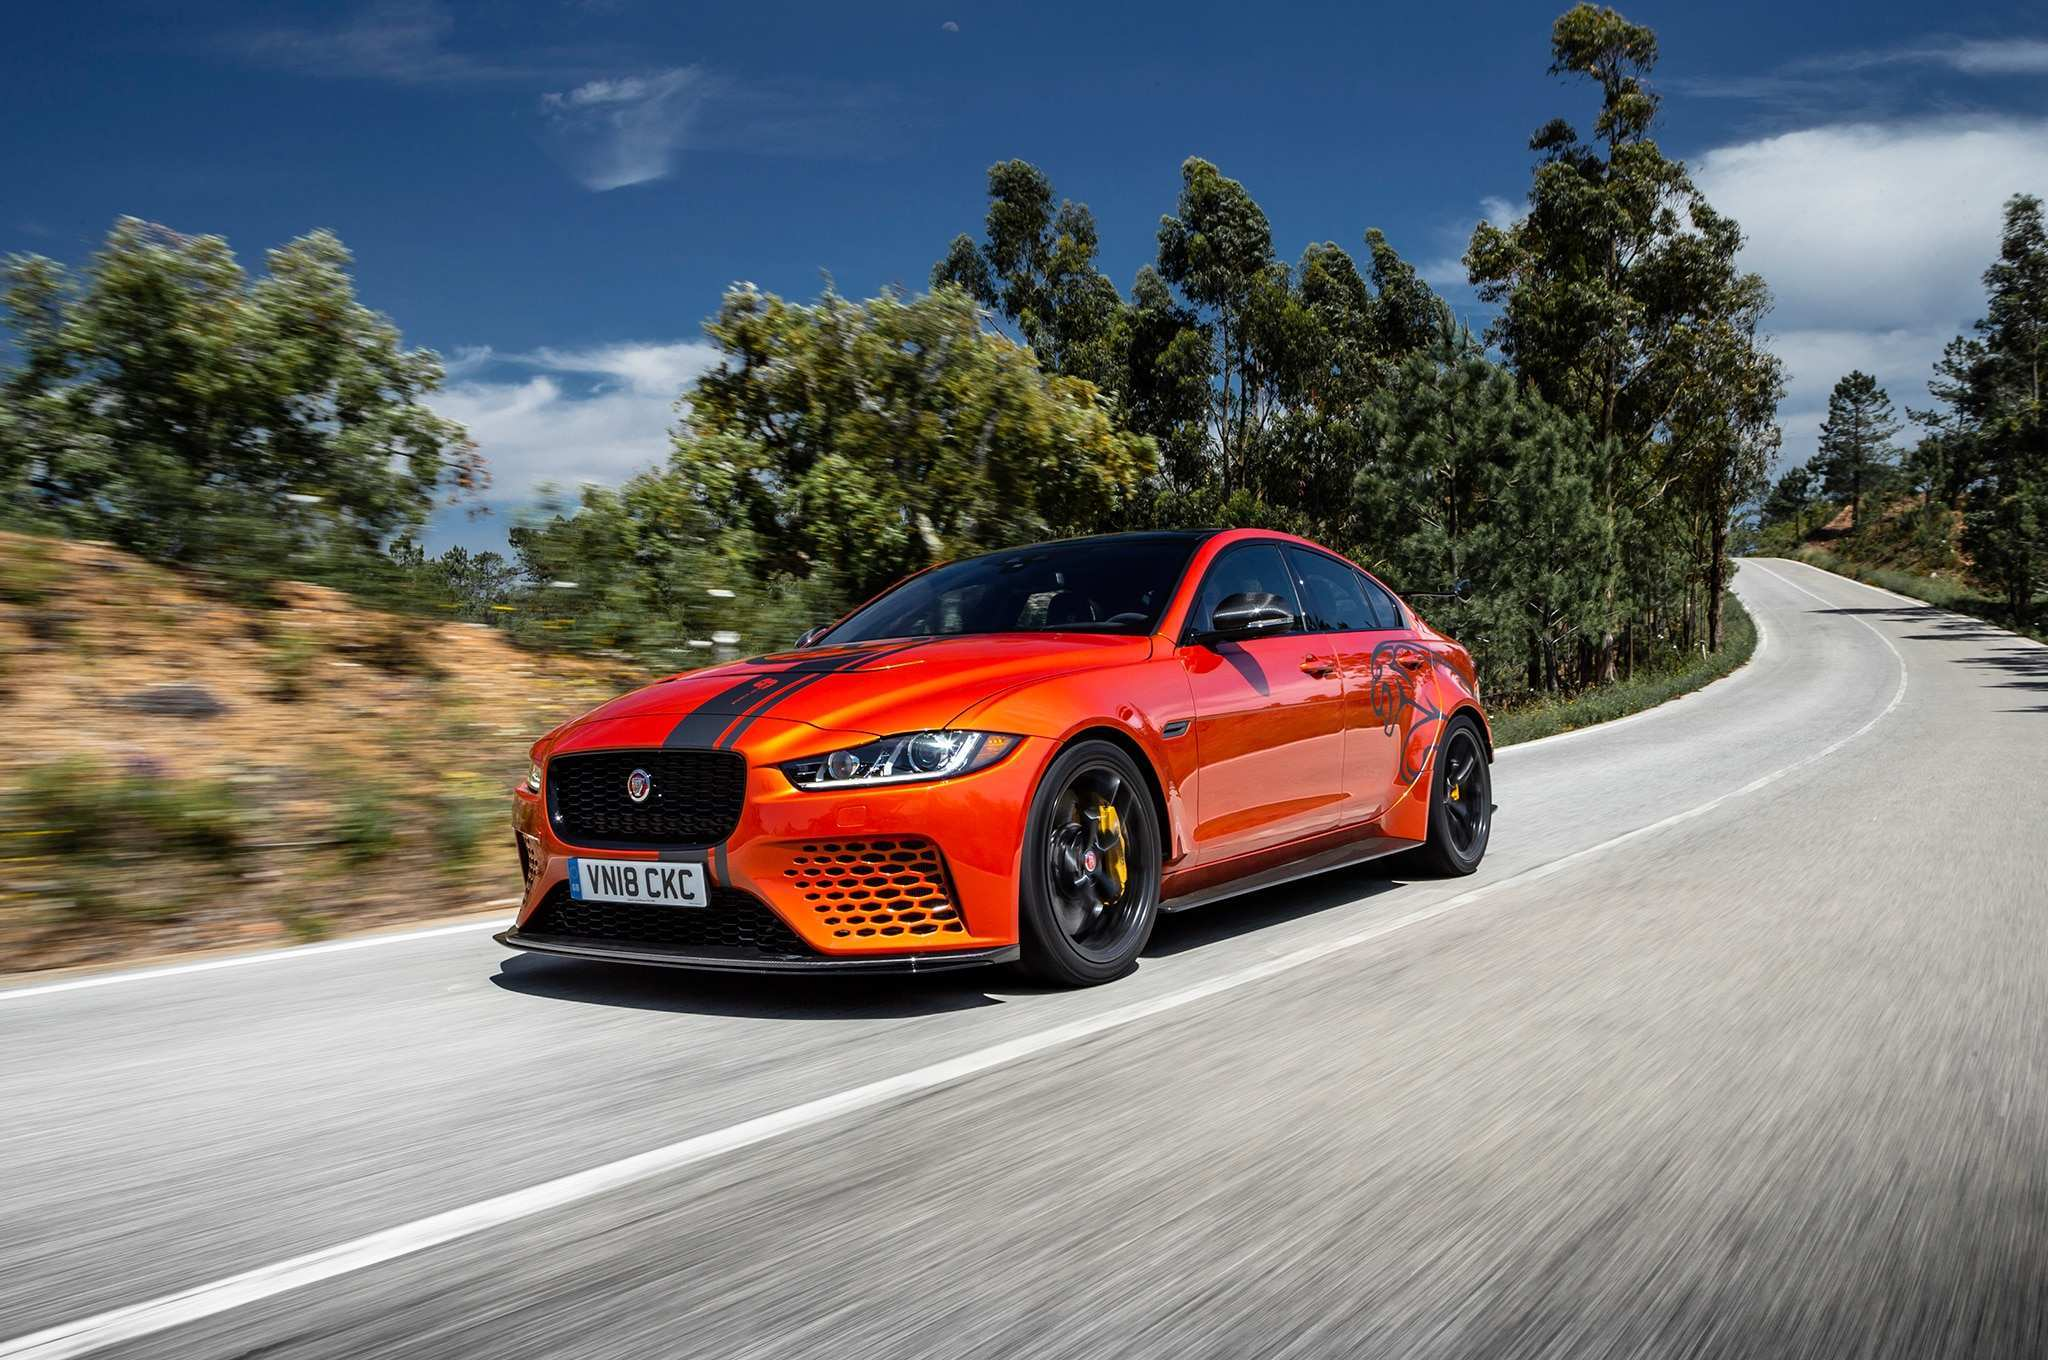 97 Best 2019 Jaguar Project 8 Price Design and Review